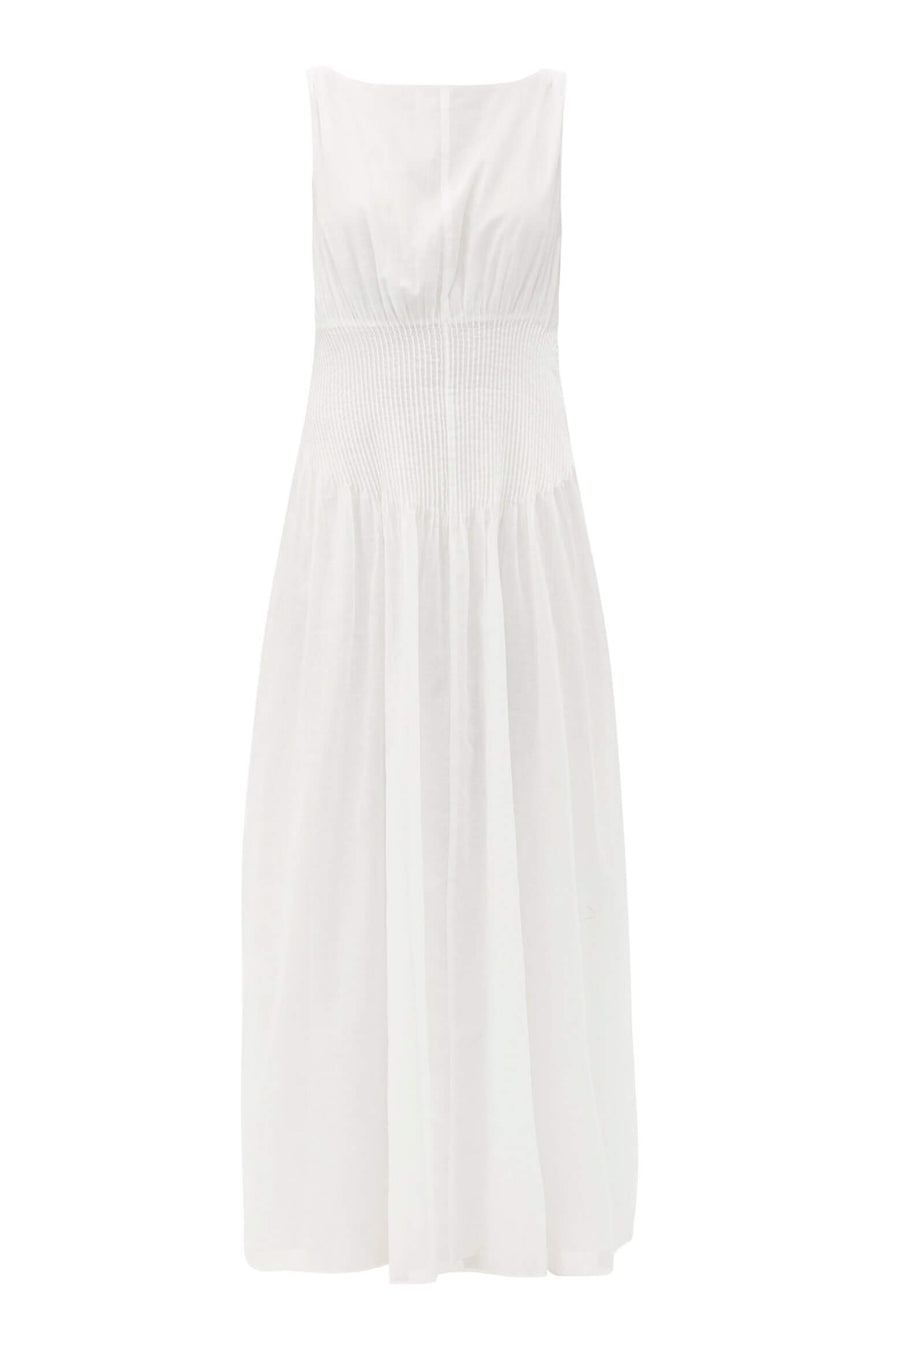 Sir Alina Maxi Dress in Ivory from The New Trend